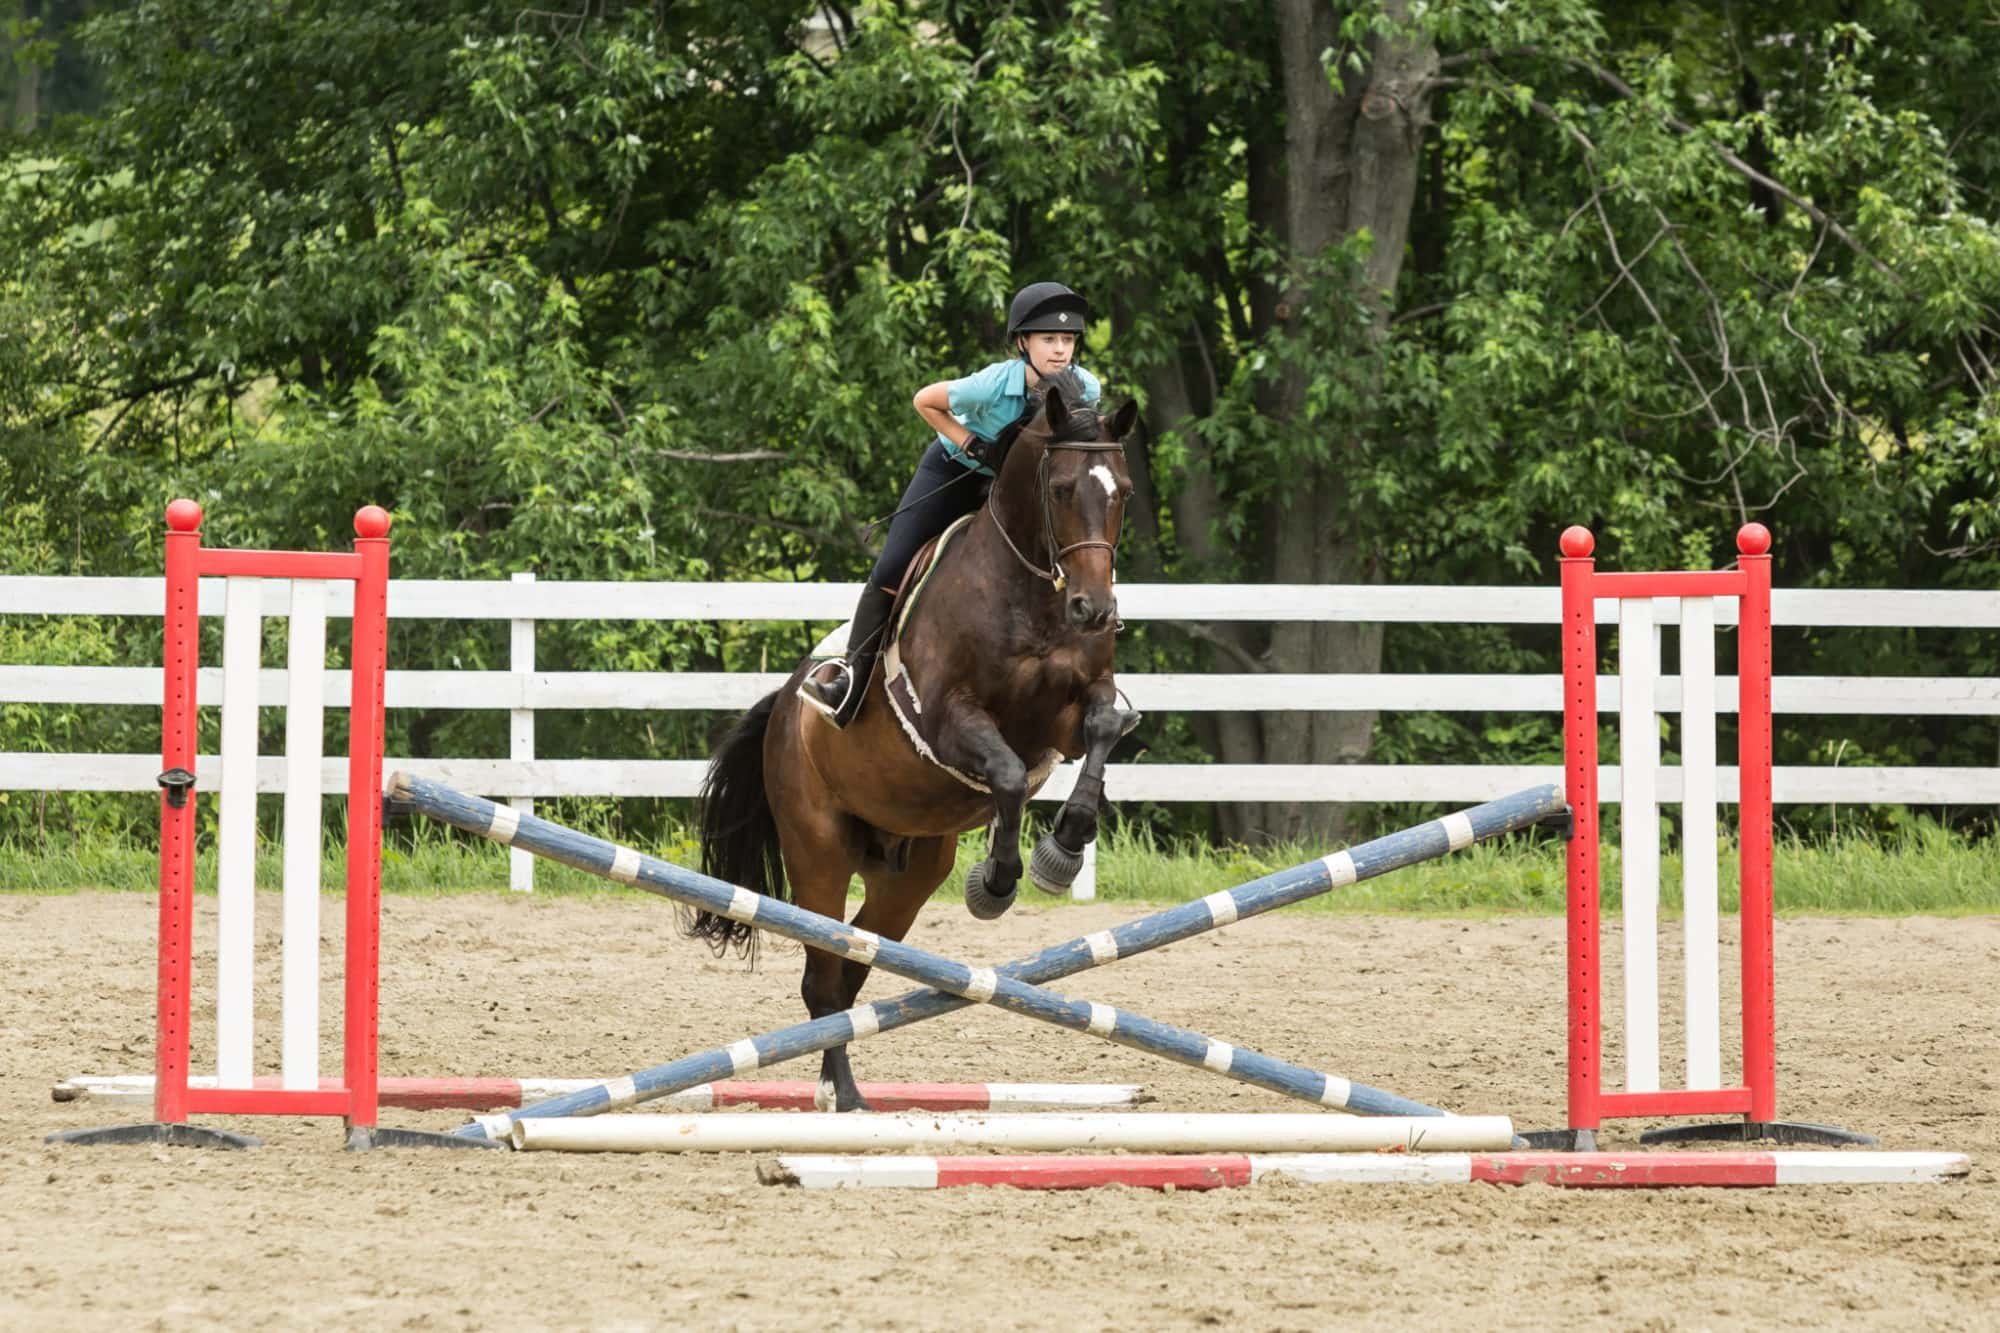 Girl riding horse in hurdle jumping drill